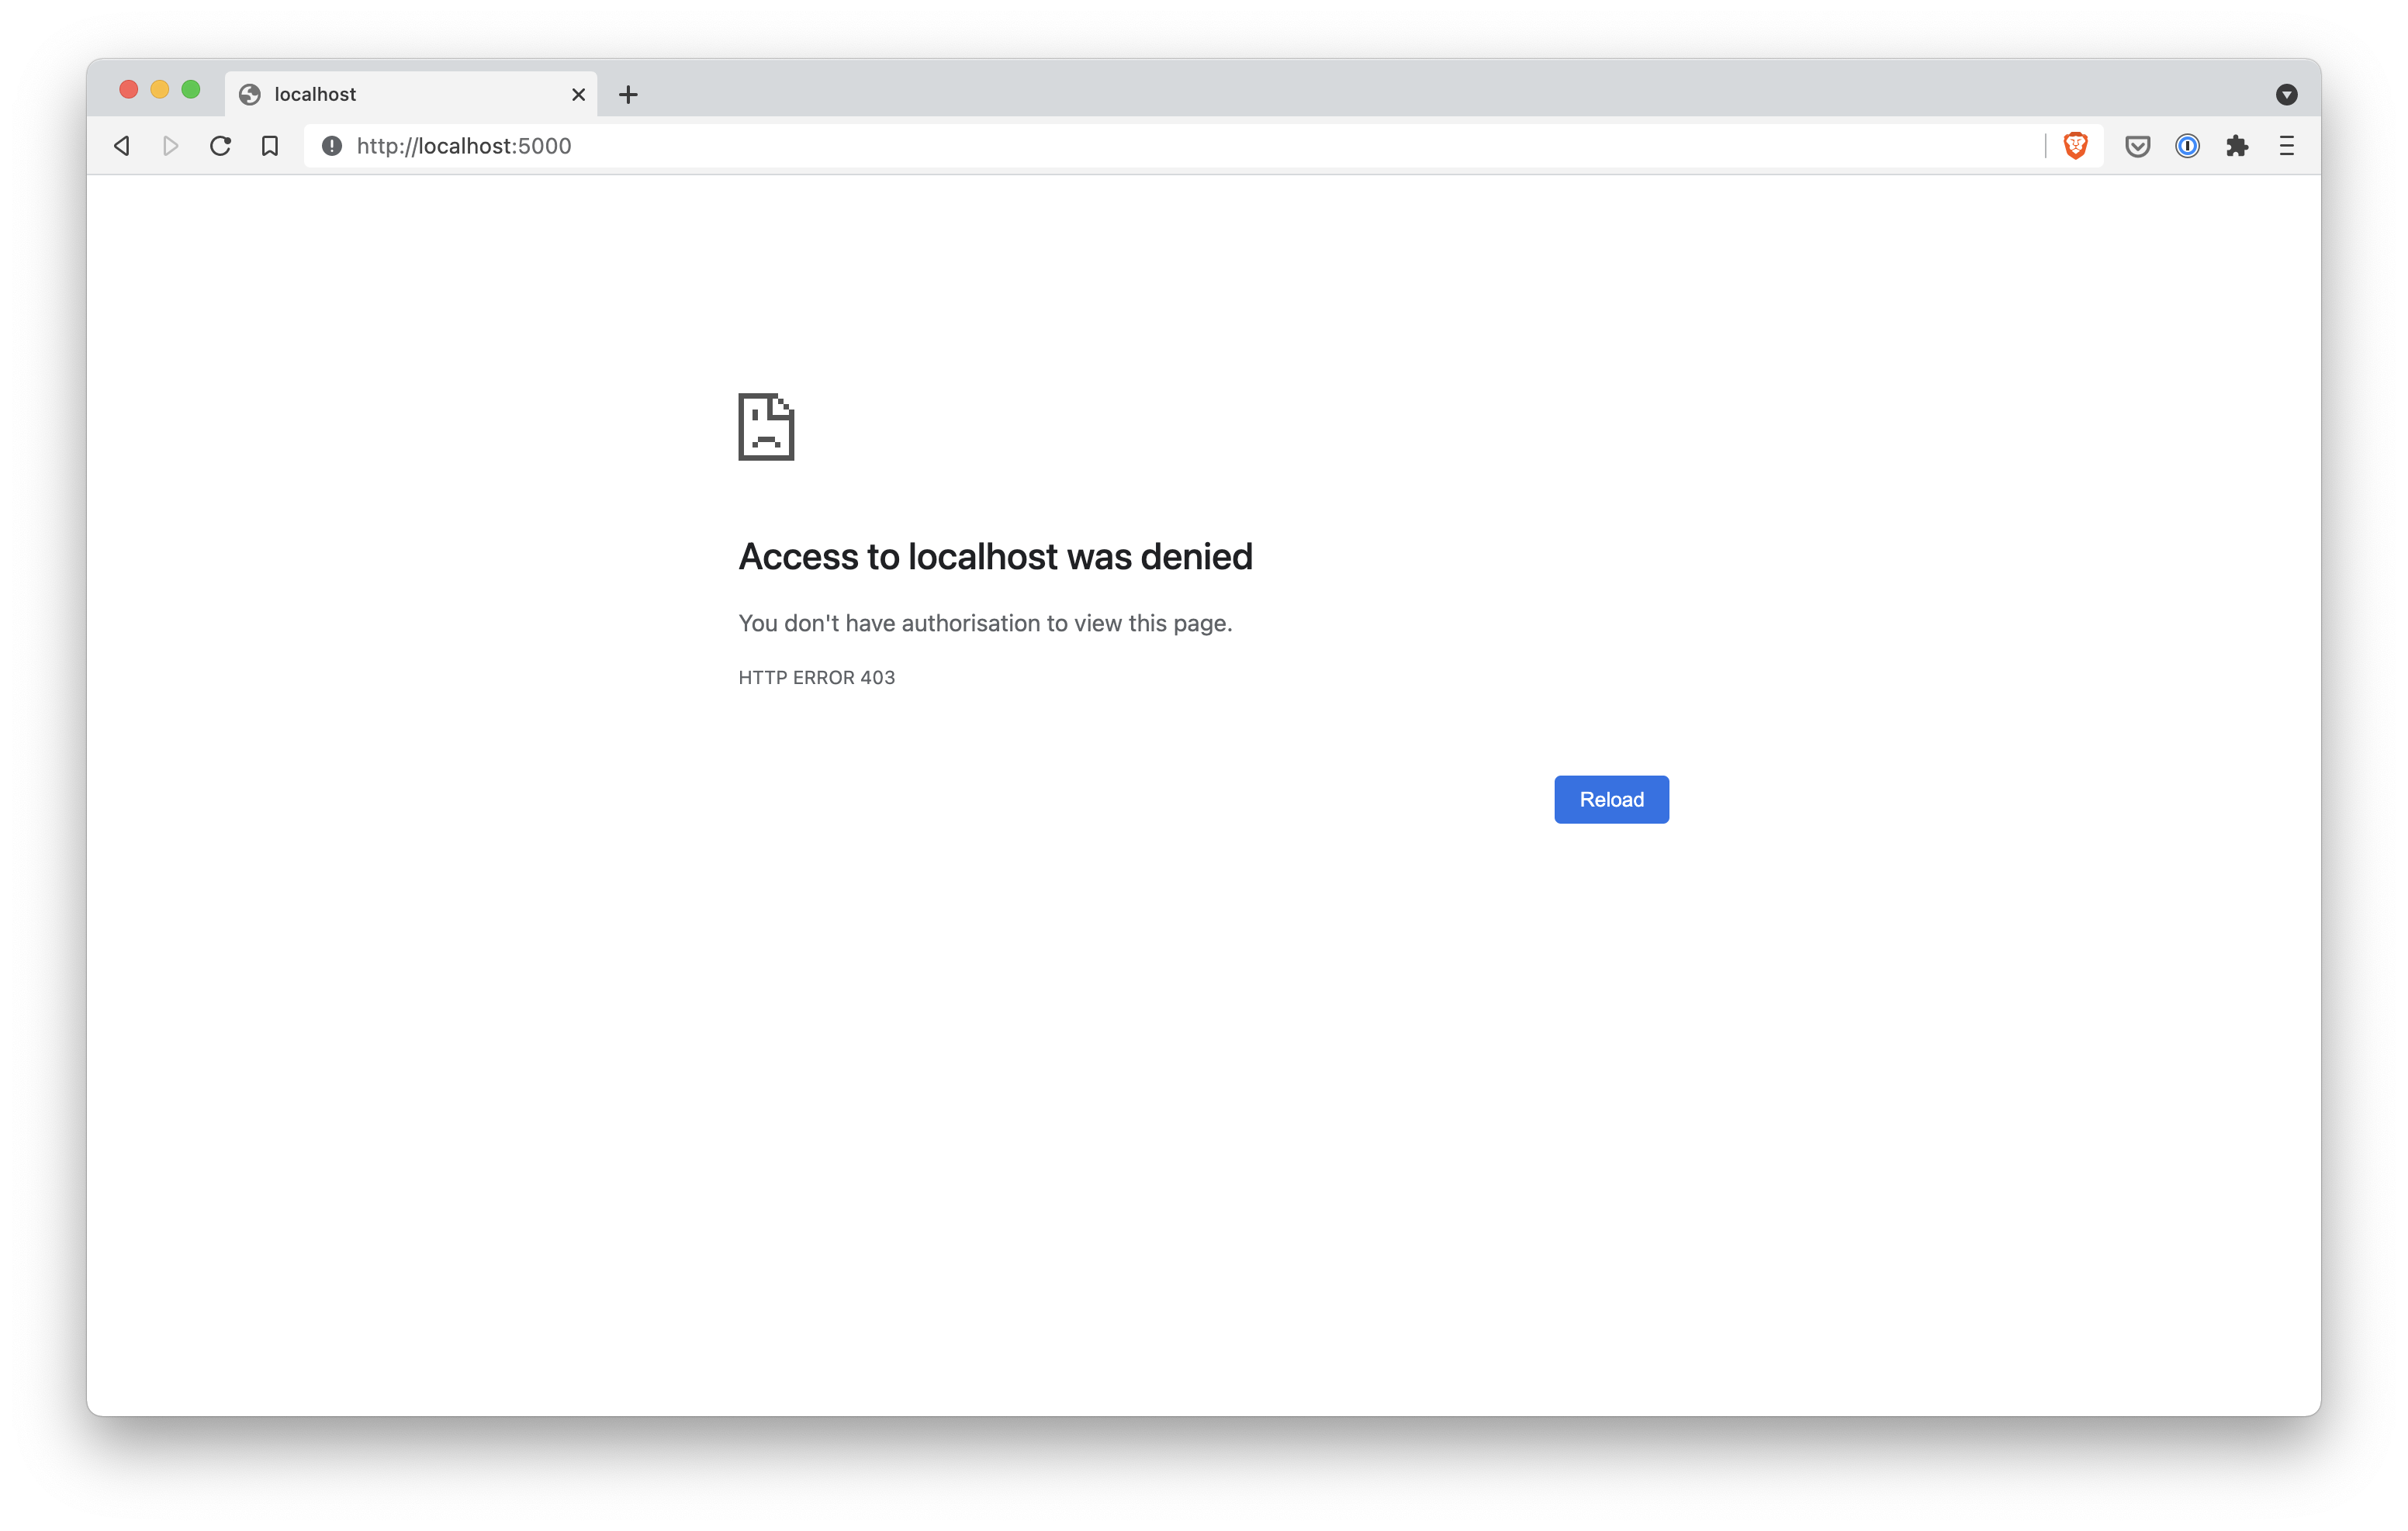 A Brave browser window showing 403 Forbidden when trying to view localhost port 5000